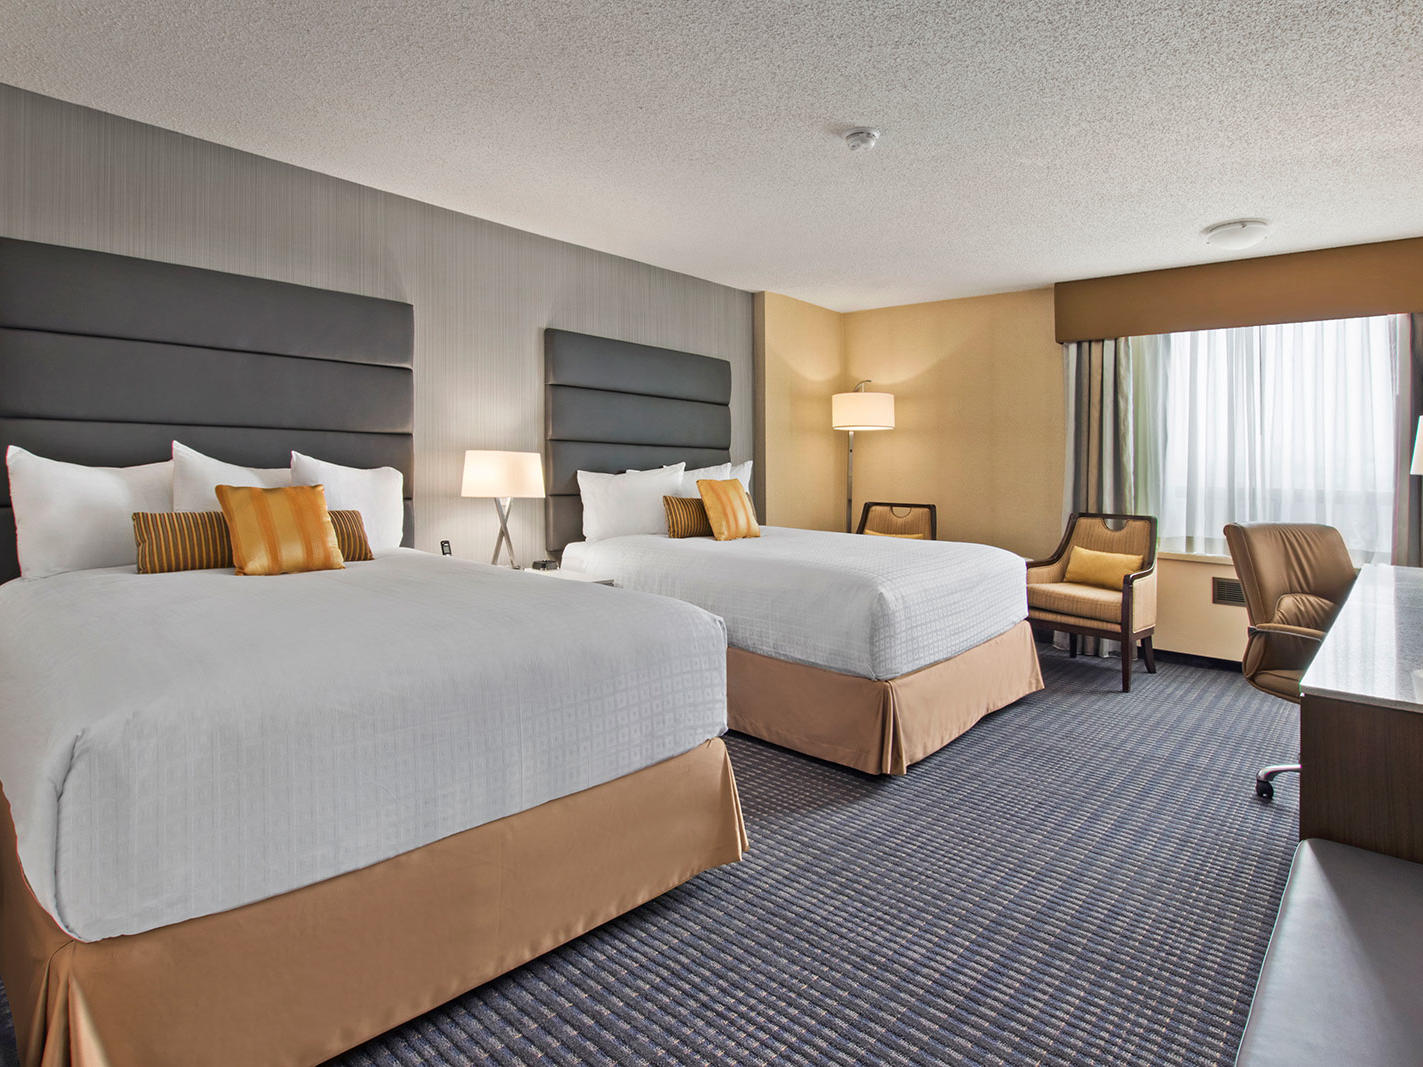 two beds in modern hotel room